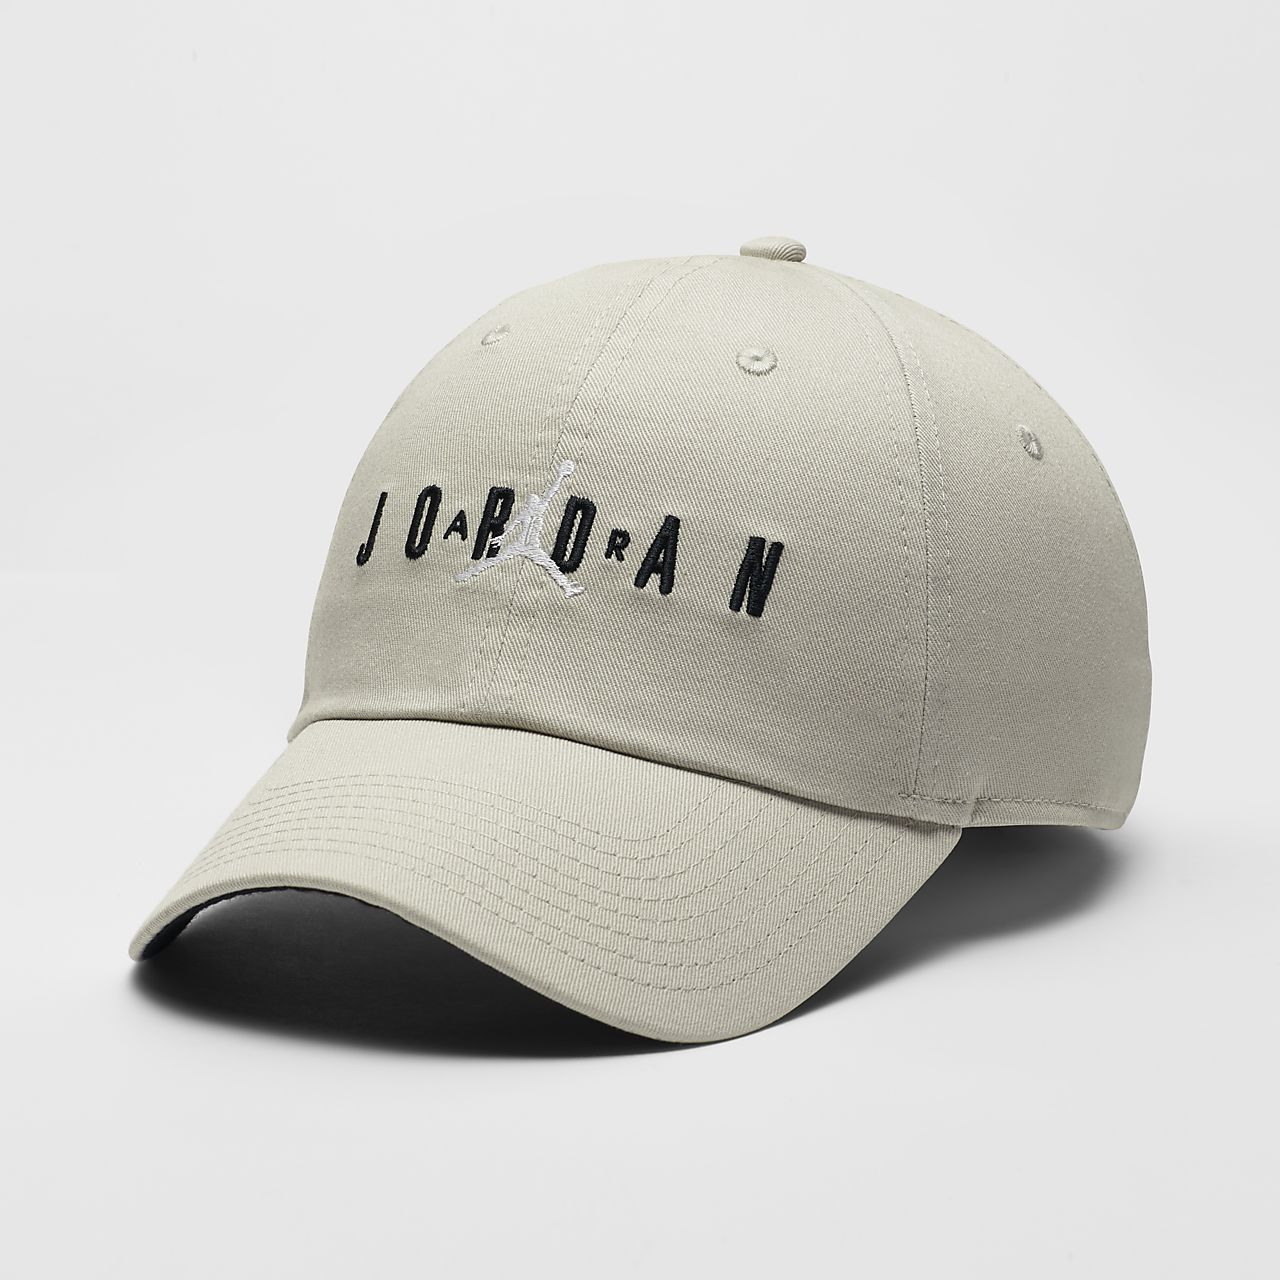 81a1817b4fe5ed Jordan Heritage 86 Jumpman Air Adjustable Hat. Nike.com